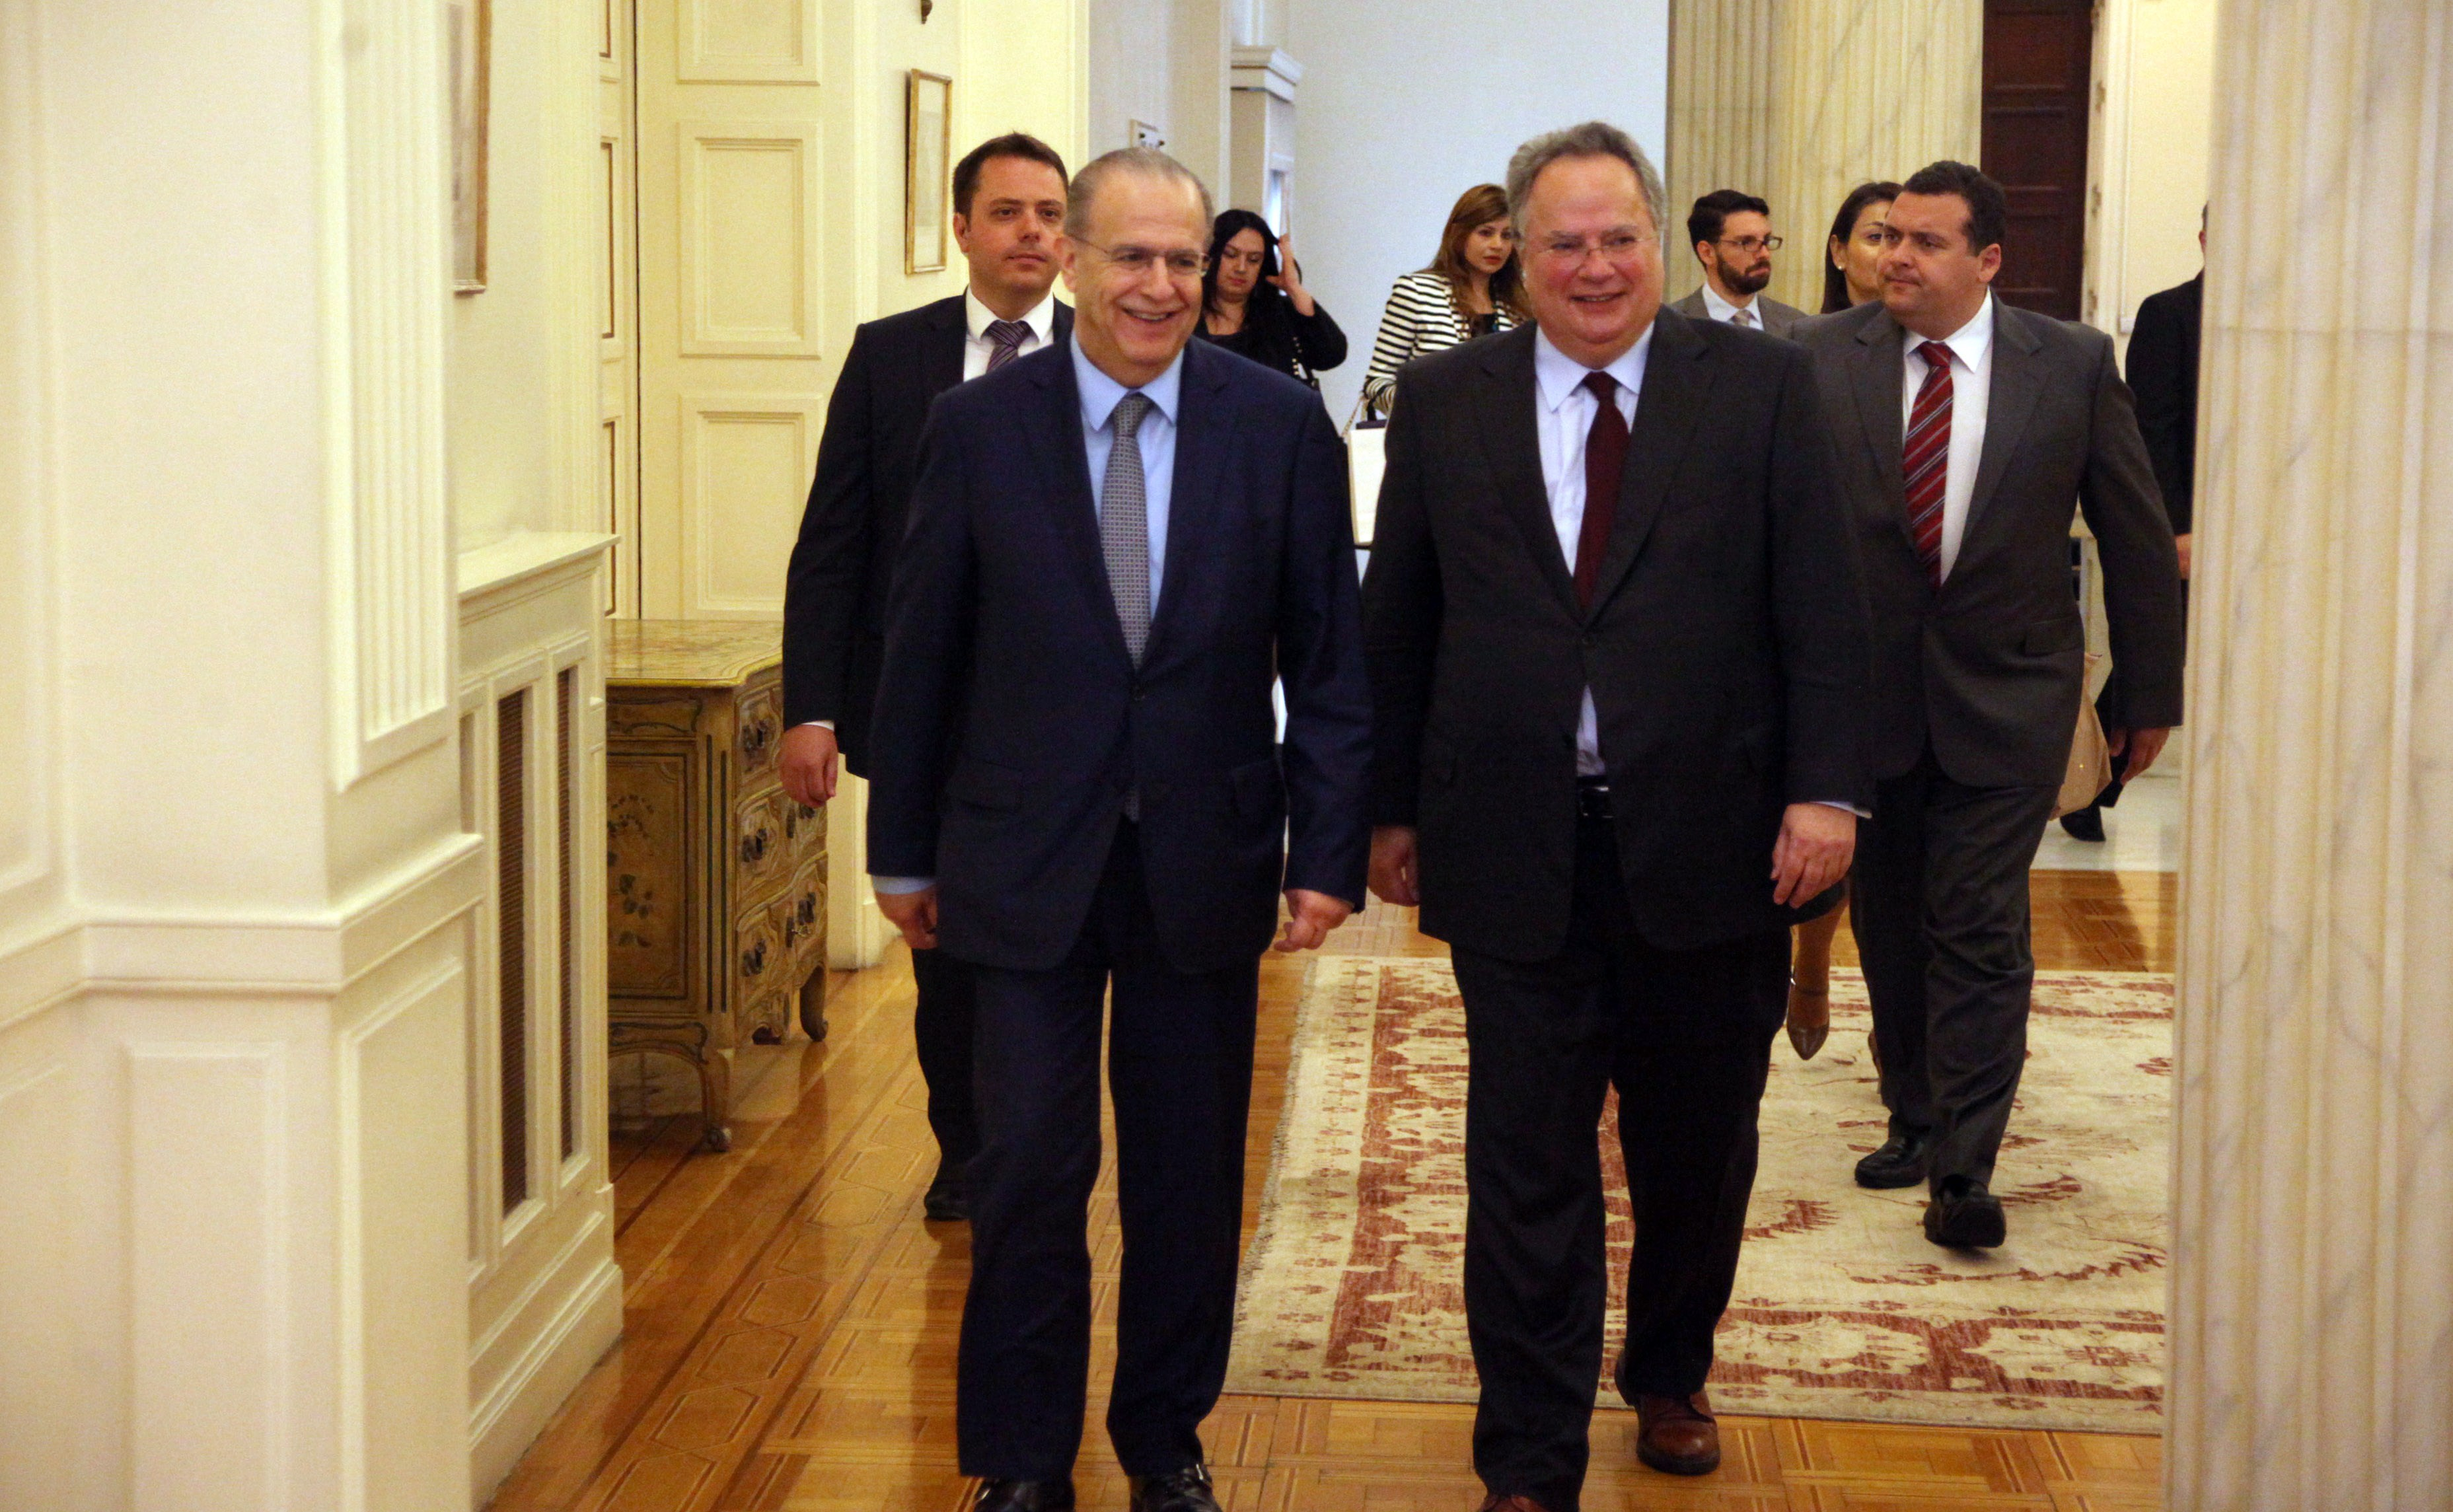 Kotzias: Greece will spare no effort until the Cypriot case is vindicated